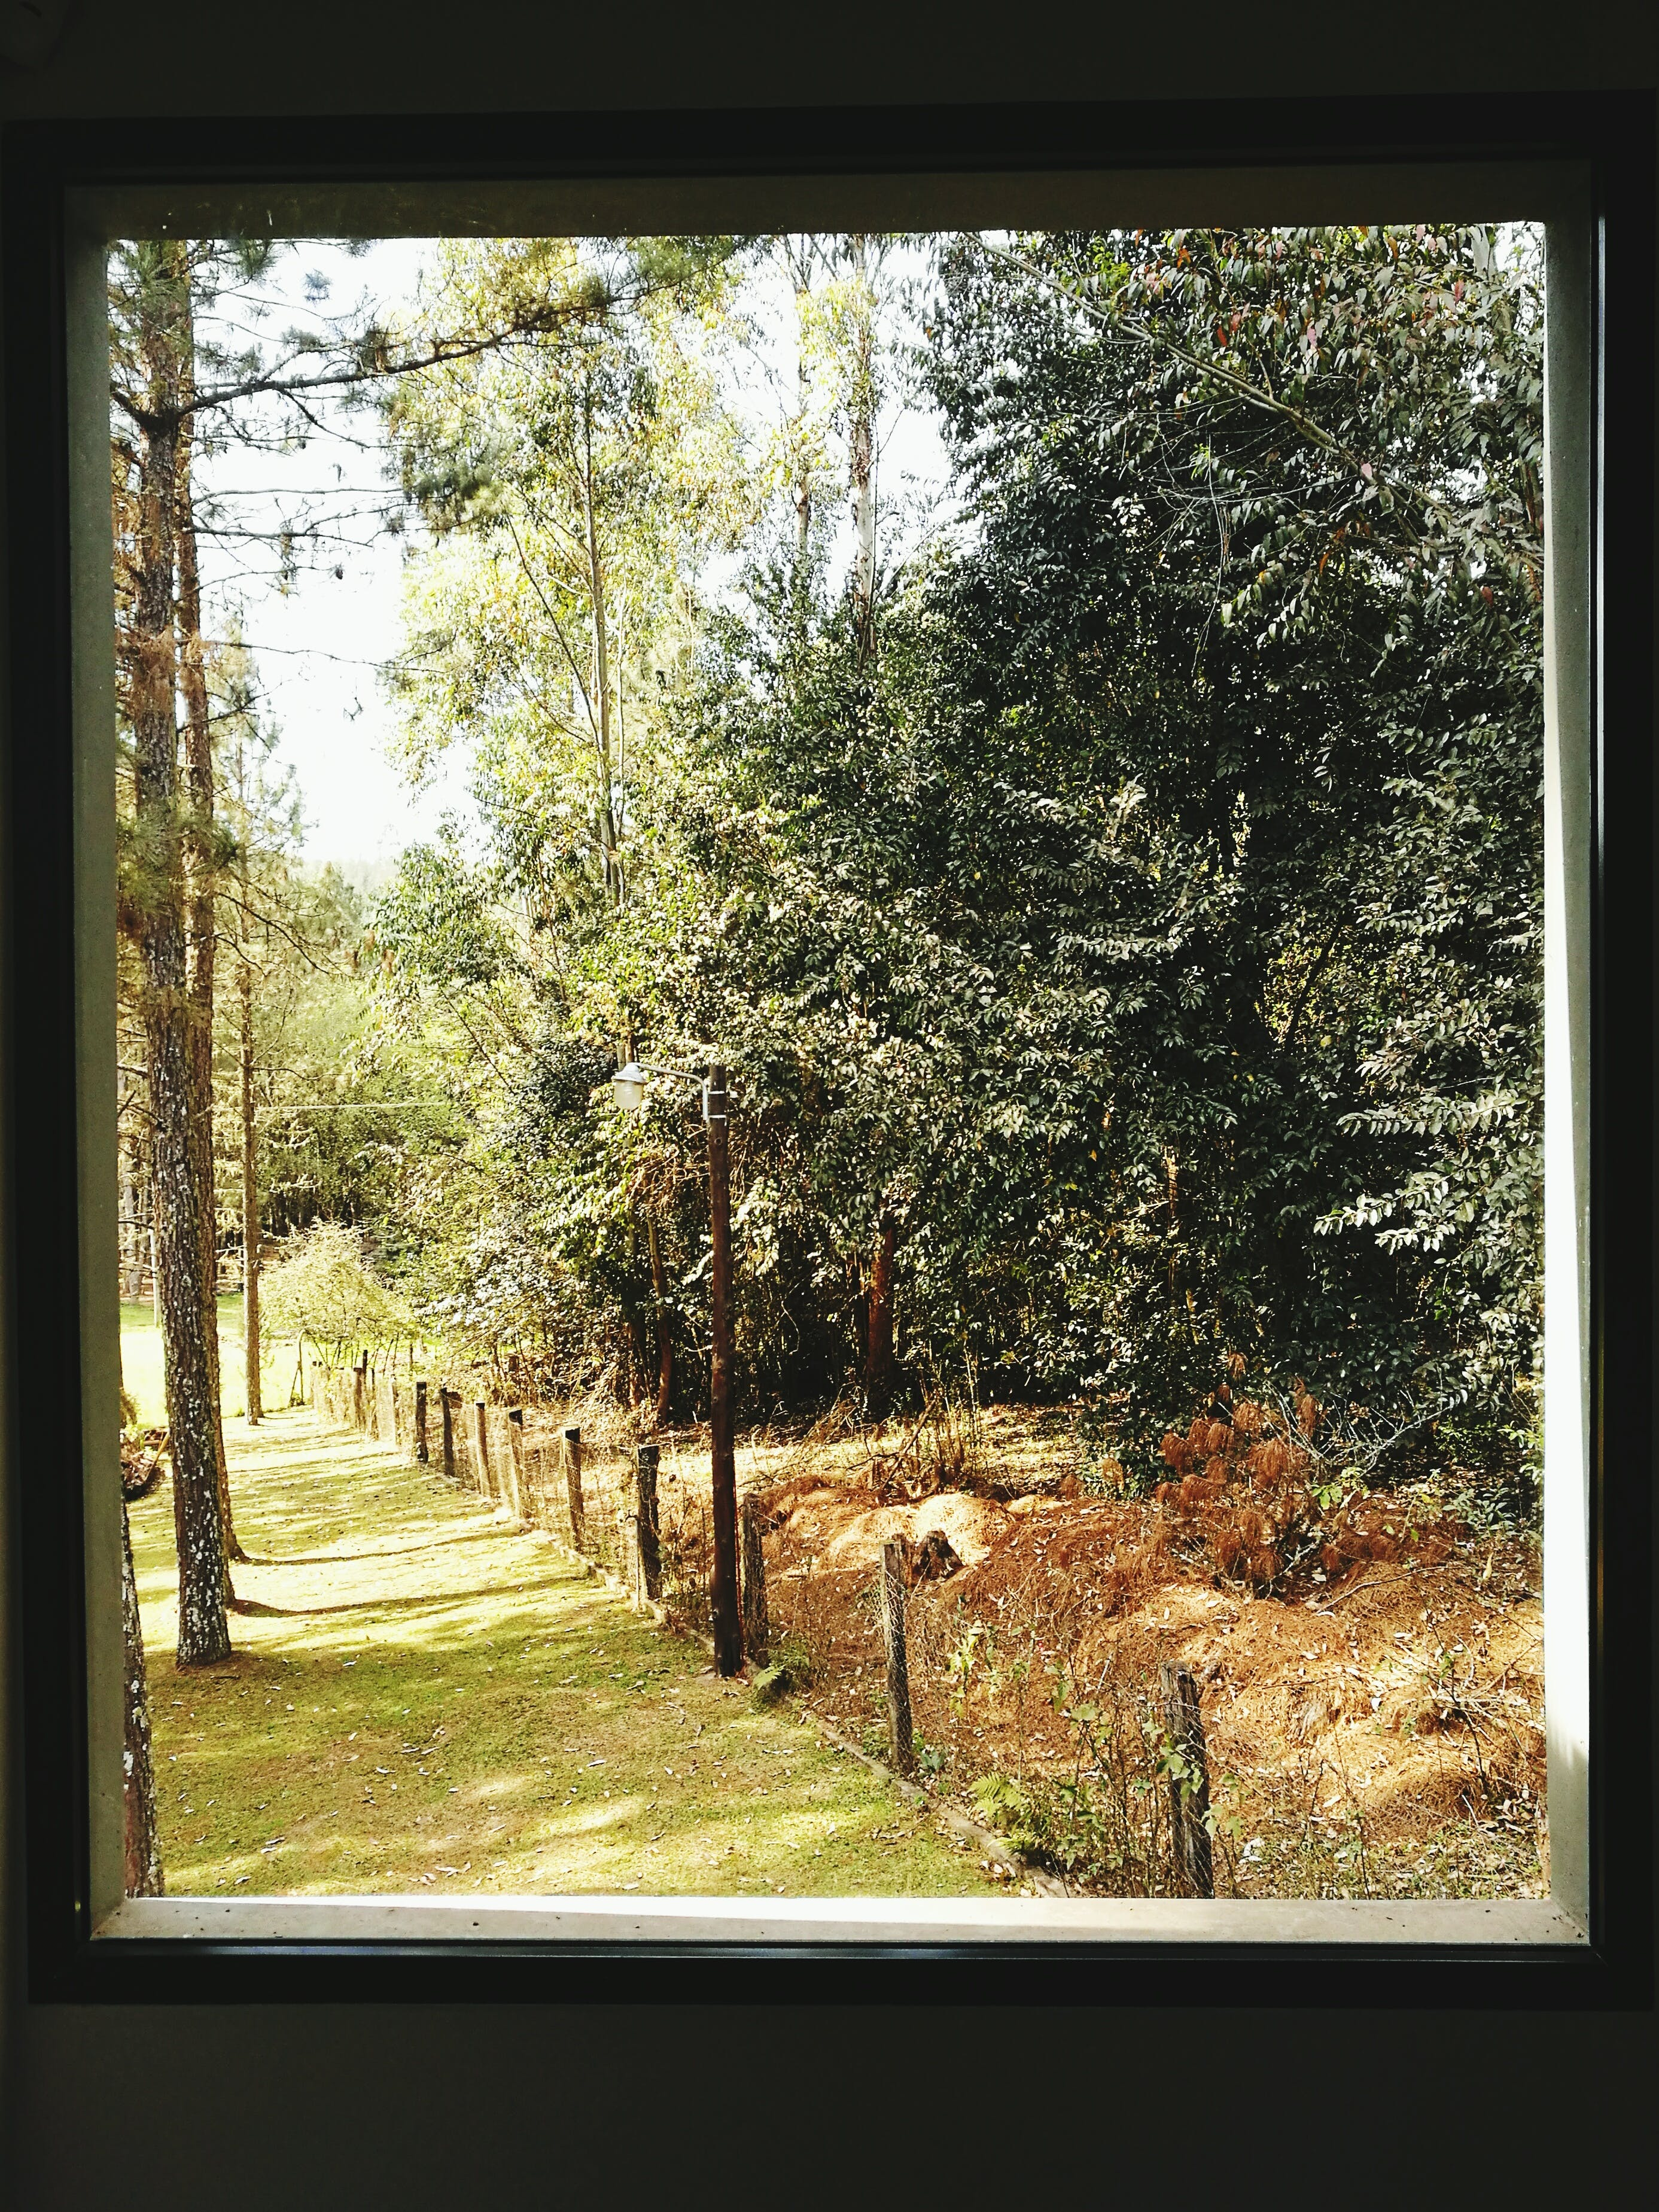 Free stock photo of #green #bosque #view #window